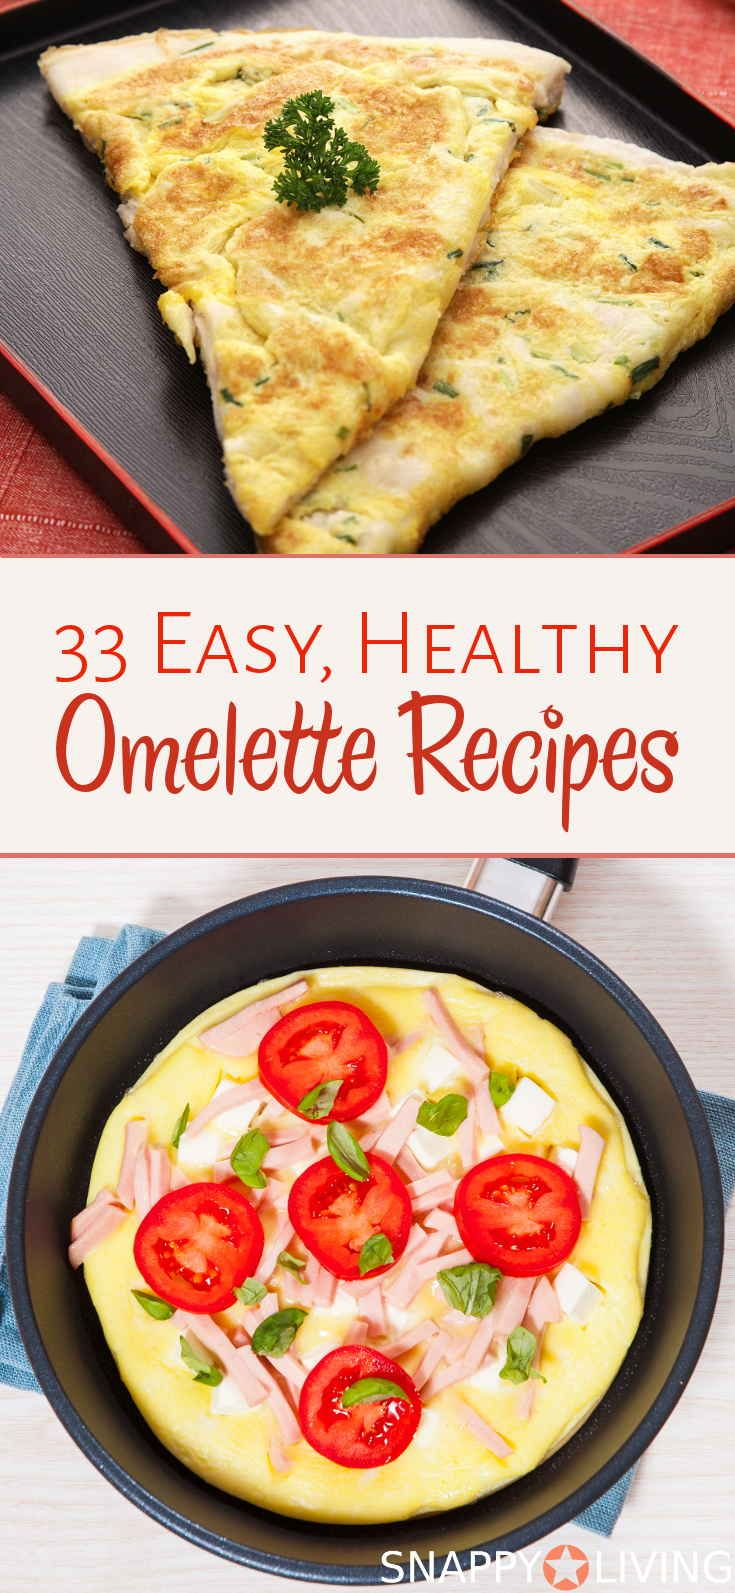 33 Easy Delicious Omelette Recipes | One-Dish Meals | Egg | Healthy | Omelet Recipes | #recipes #omelette